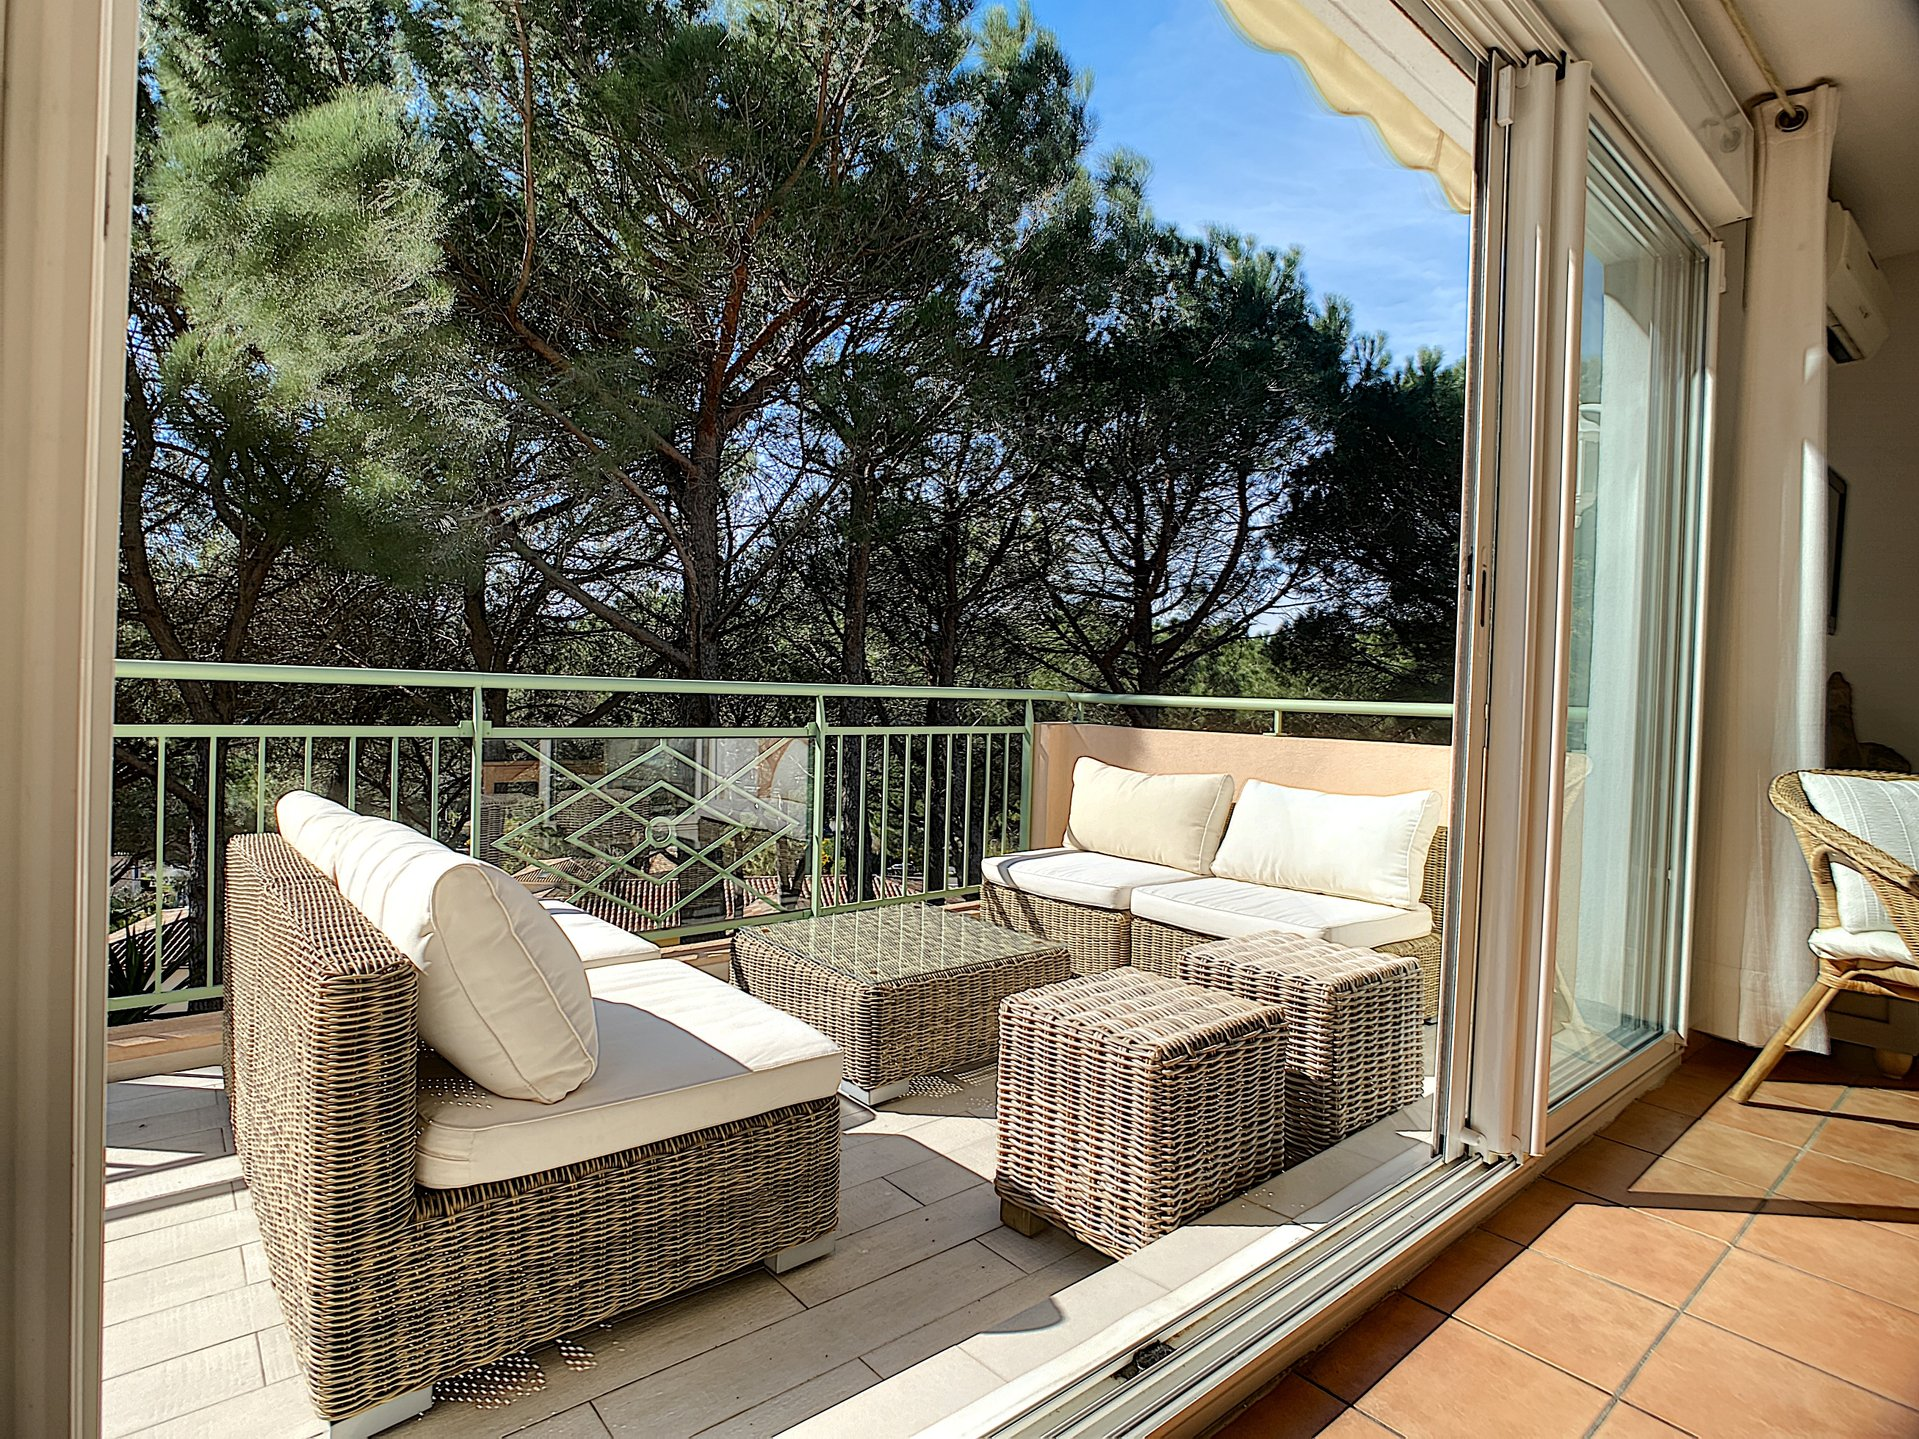 Apartment for sale with sea view in Sainte Maxime